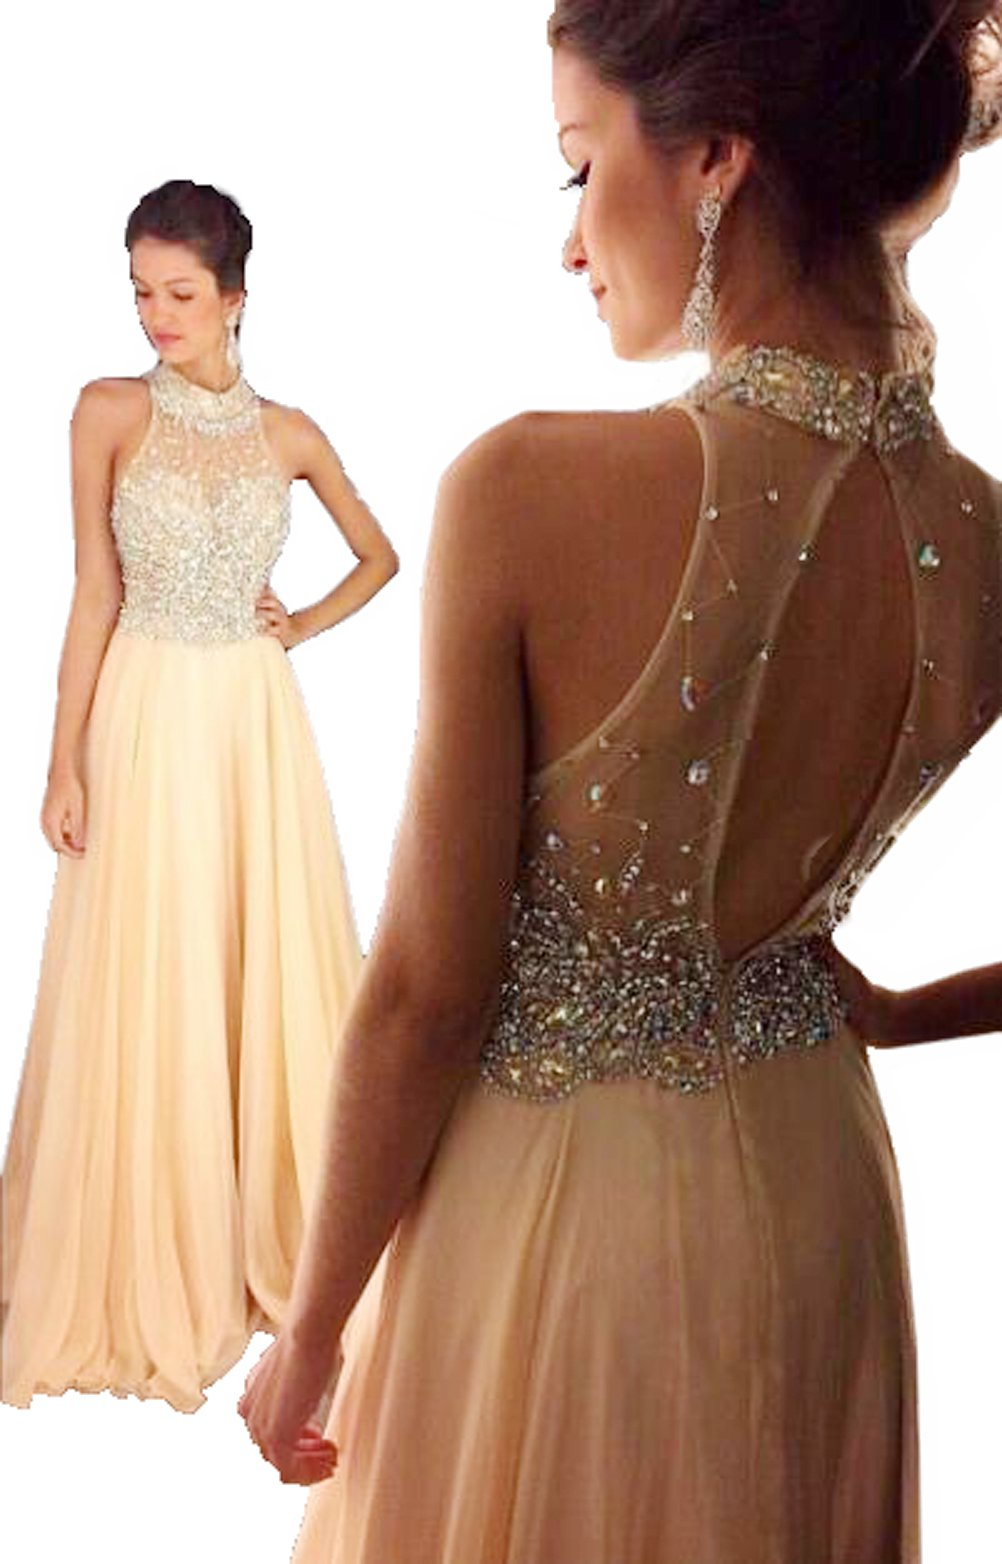 Fanciest Women's Crystal Beaded Prom Dresses 2017 Long Evening Gowns Formal Champagne US6